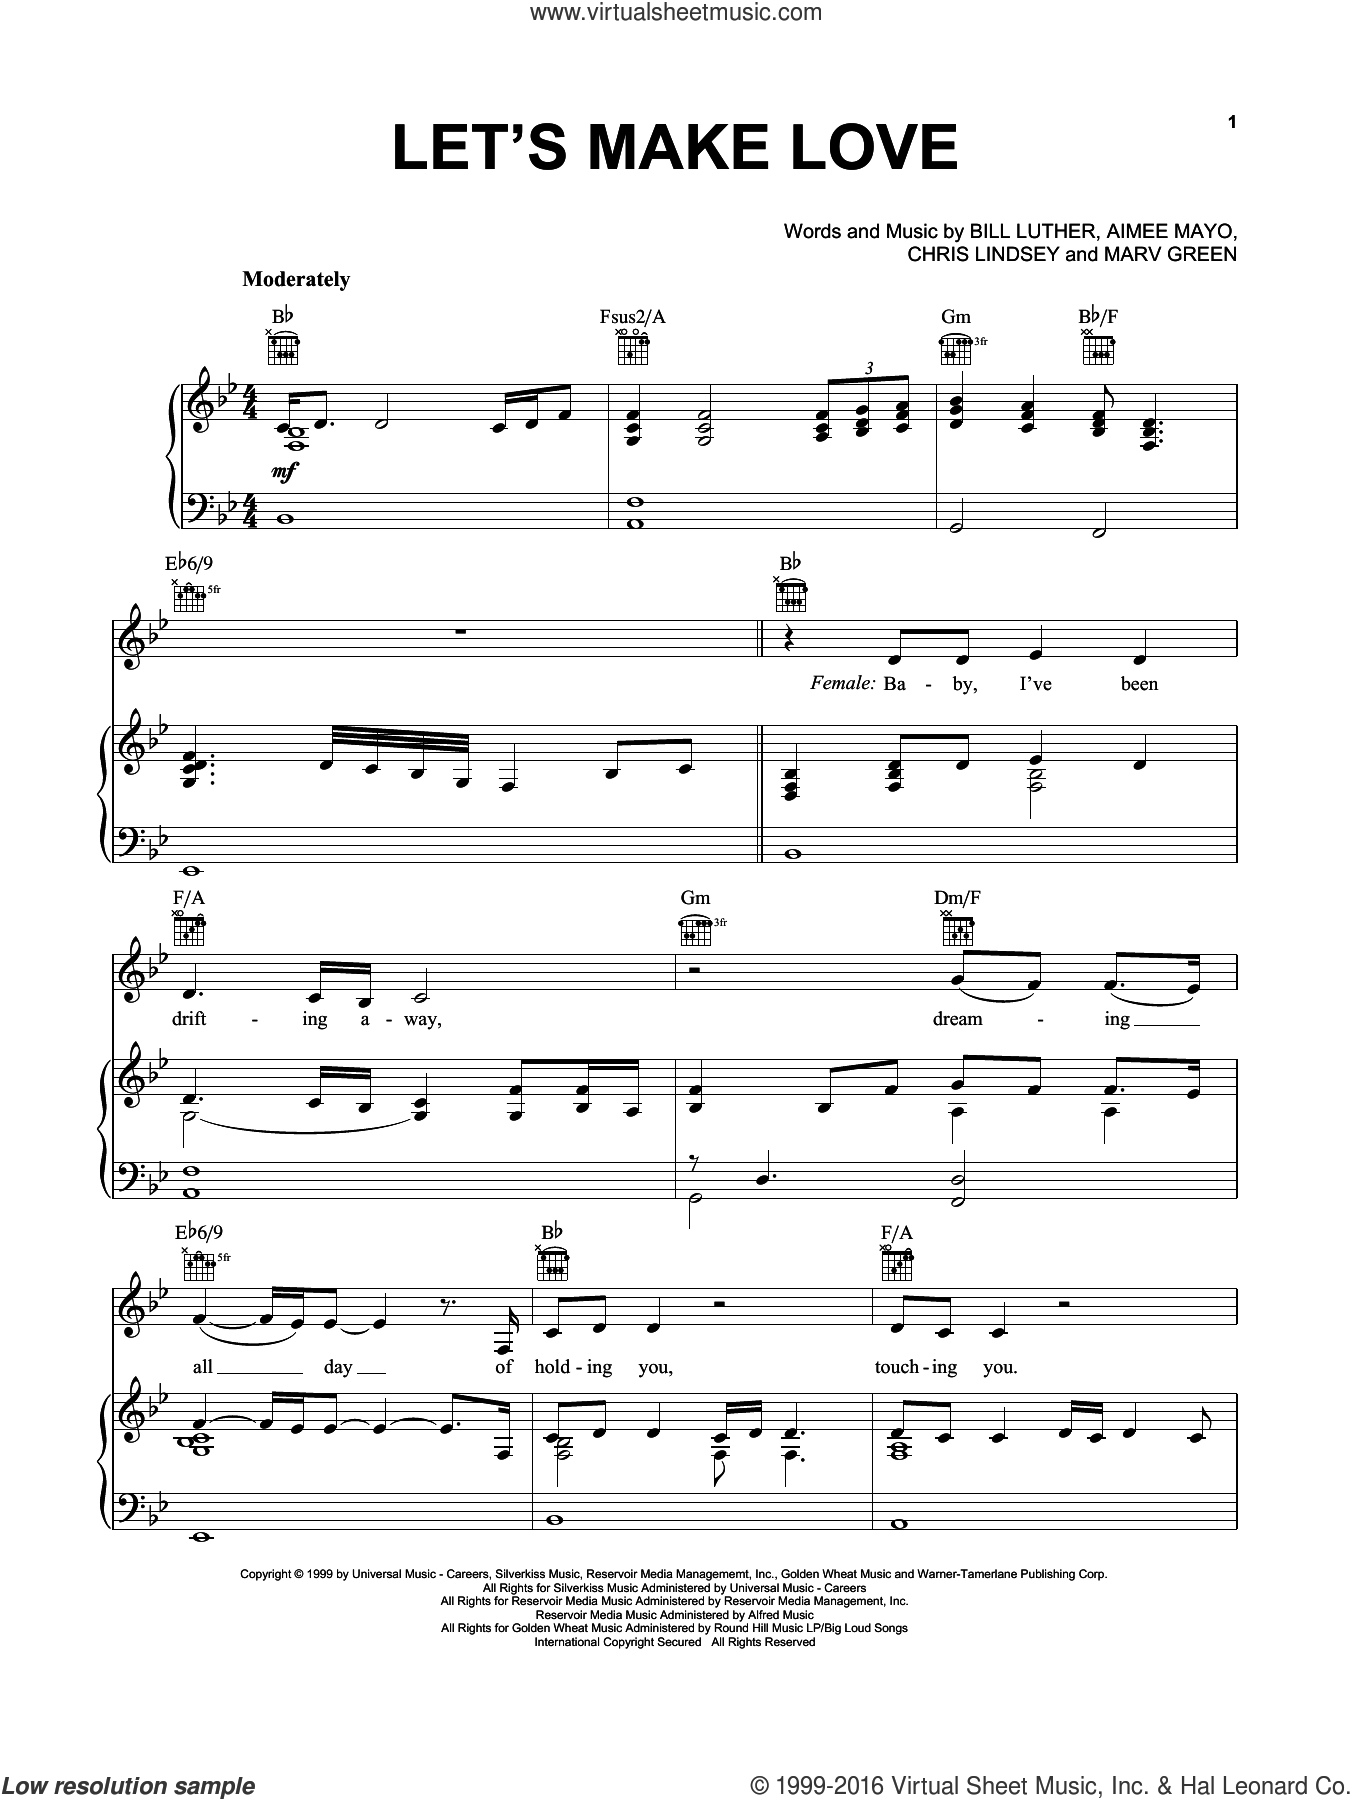 Let's Make Love sheet music for voice, piano or guitar by Faith Hill with Tim McGraw, Faith Hill, Tim McGraw, Aimee Mayo, Bill Luther and Chris Lindsey, intermediate skill level